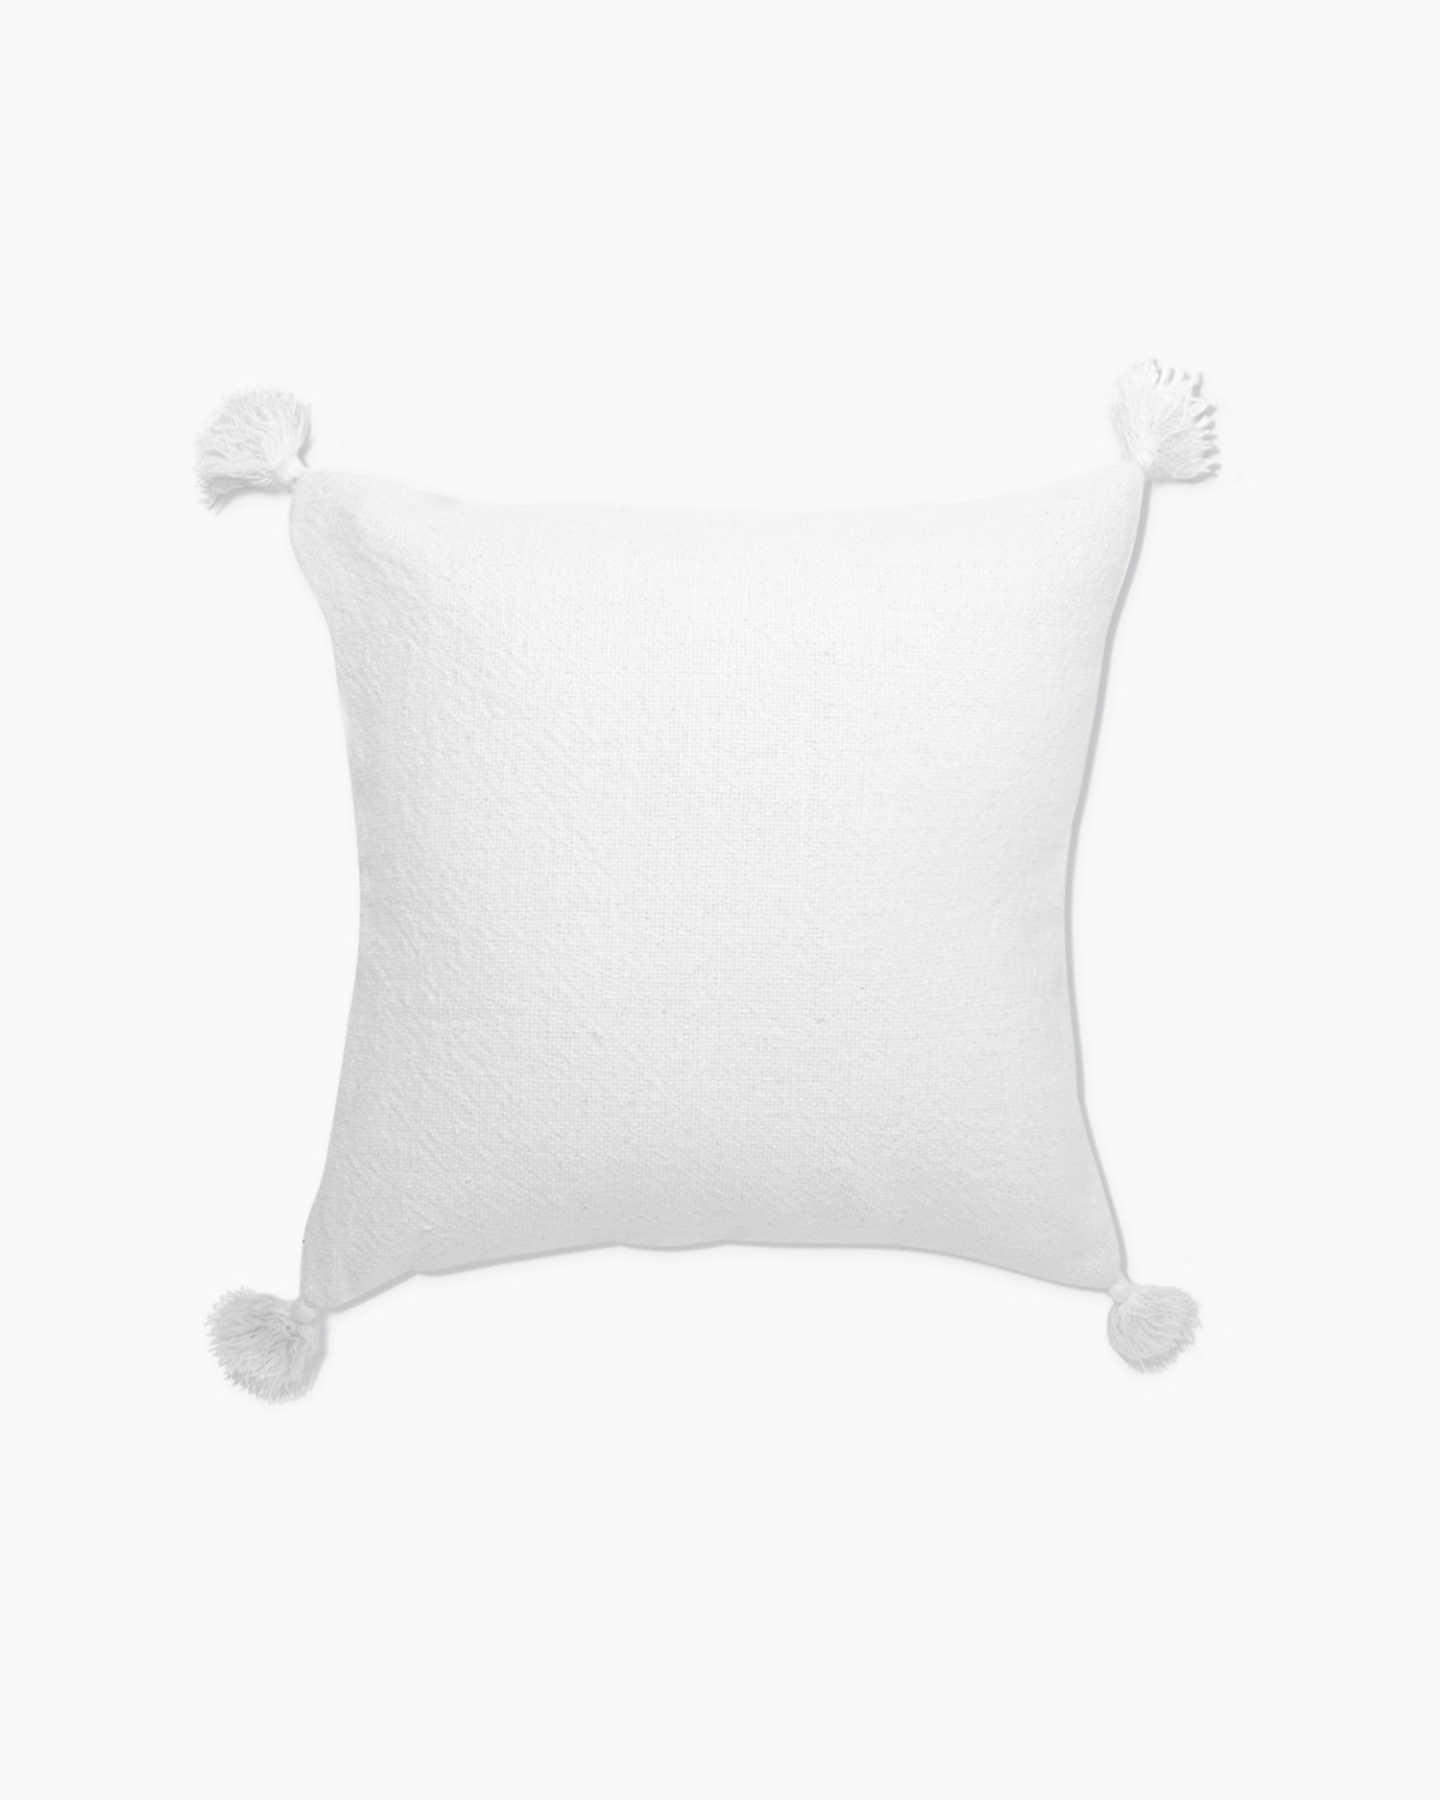 Linen Tassel Pillow Cover - White